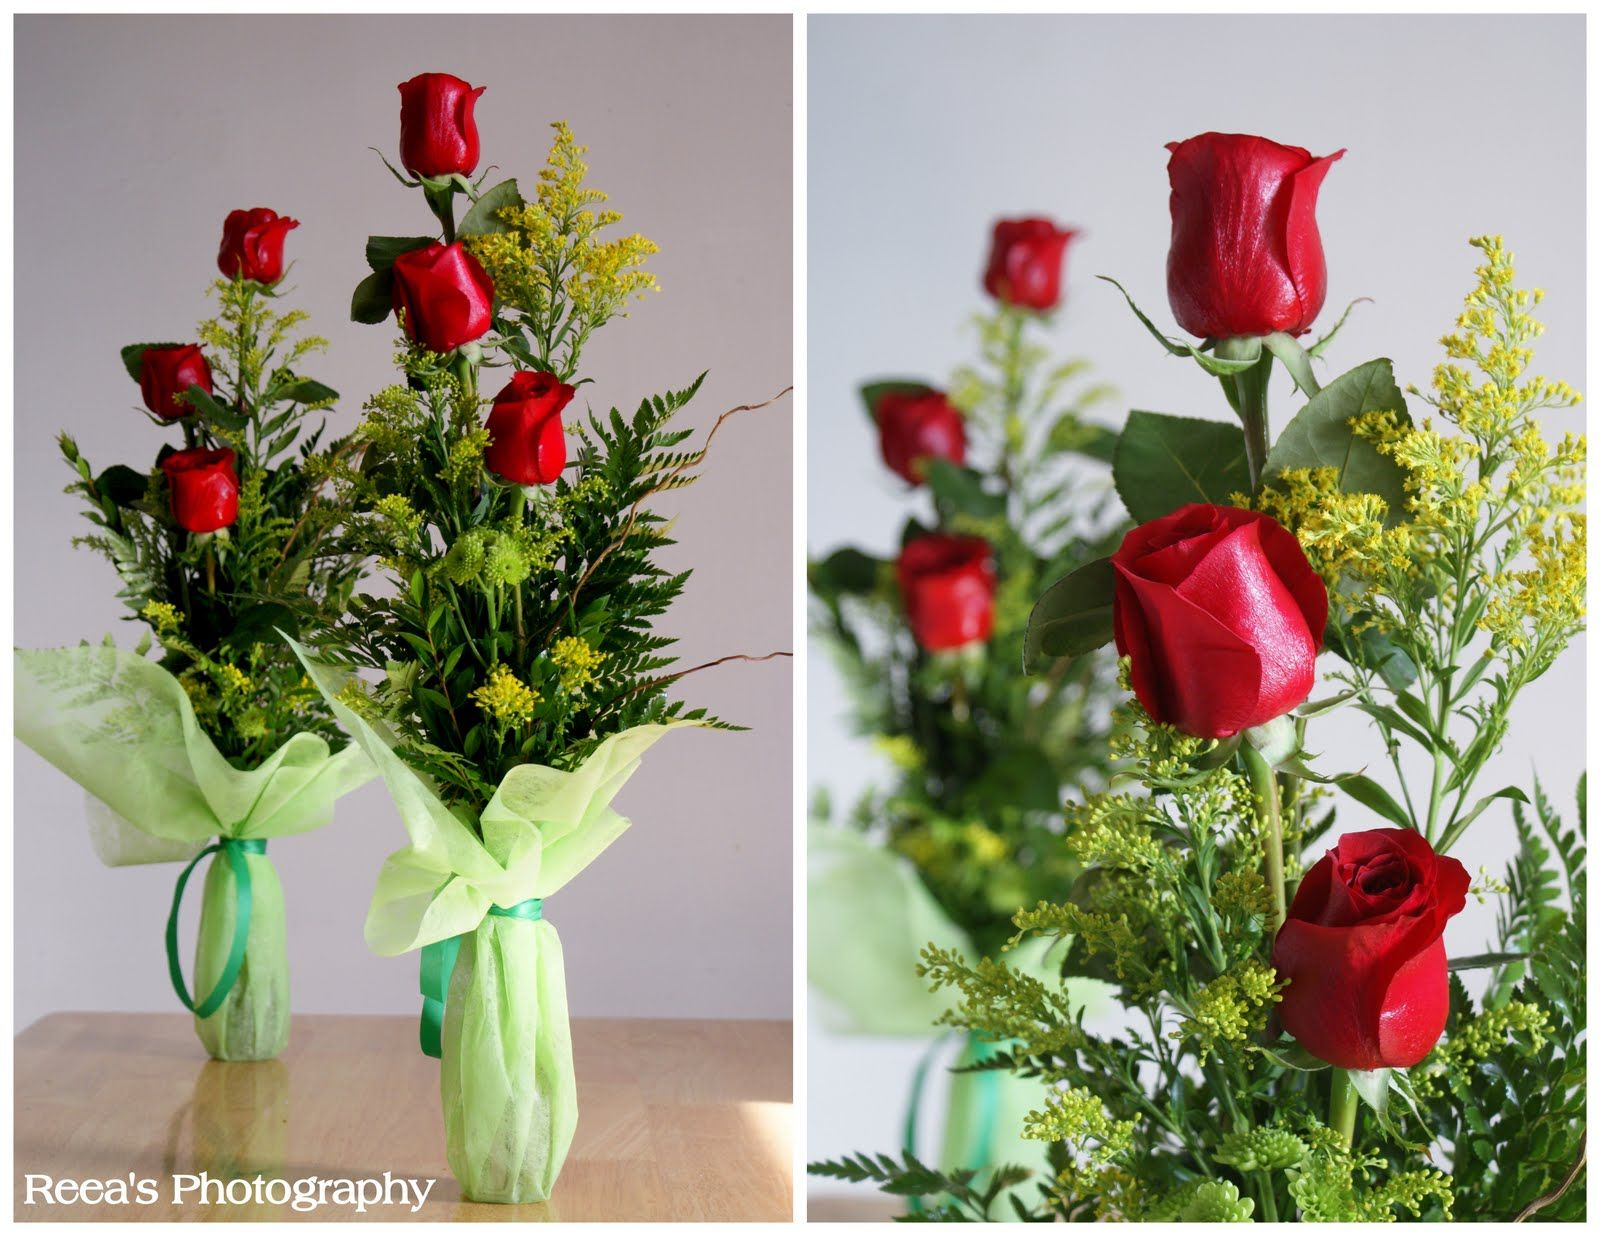 Beautiful flowers in a vase how to arrange roses in a vase beautiful flowers in a vase how to arrange roses in a vase ehow reviewsmspy